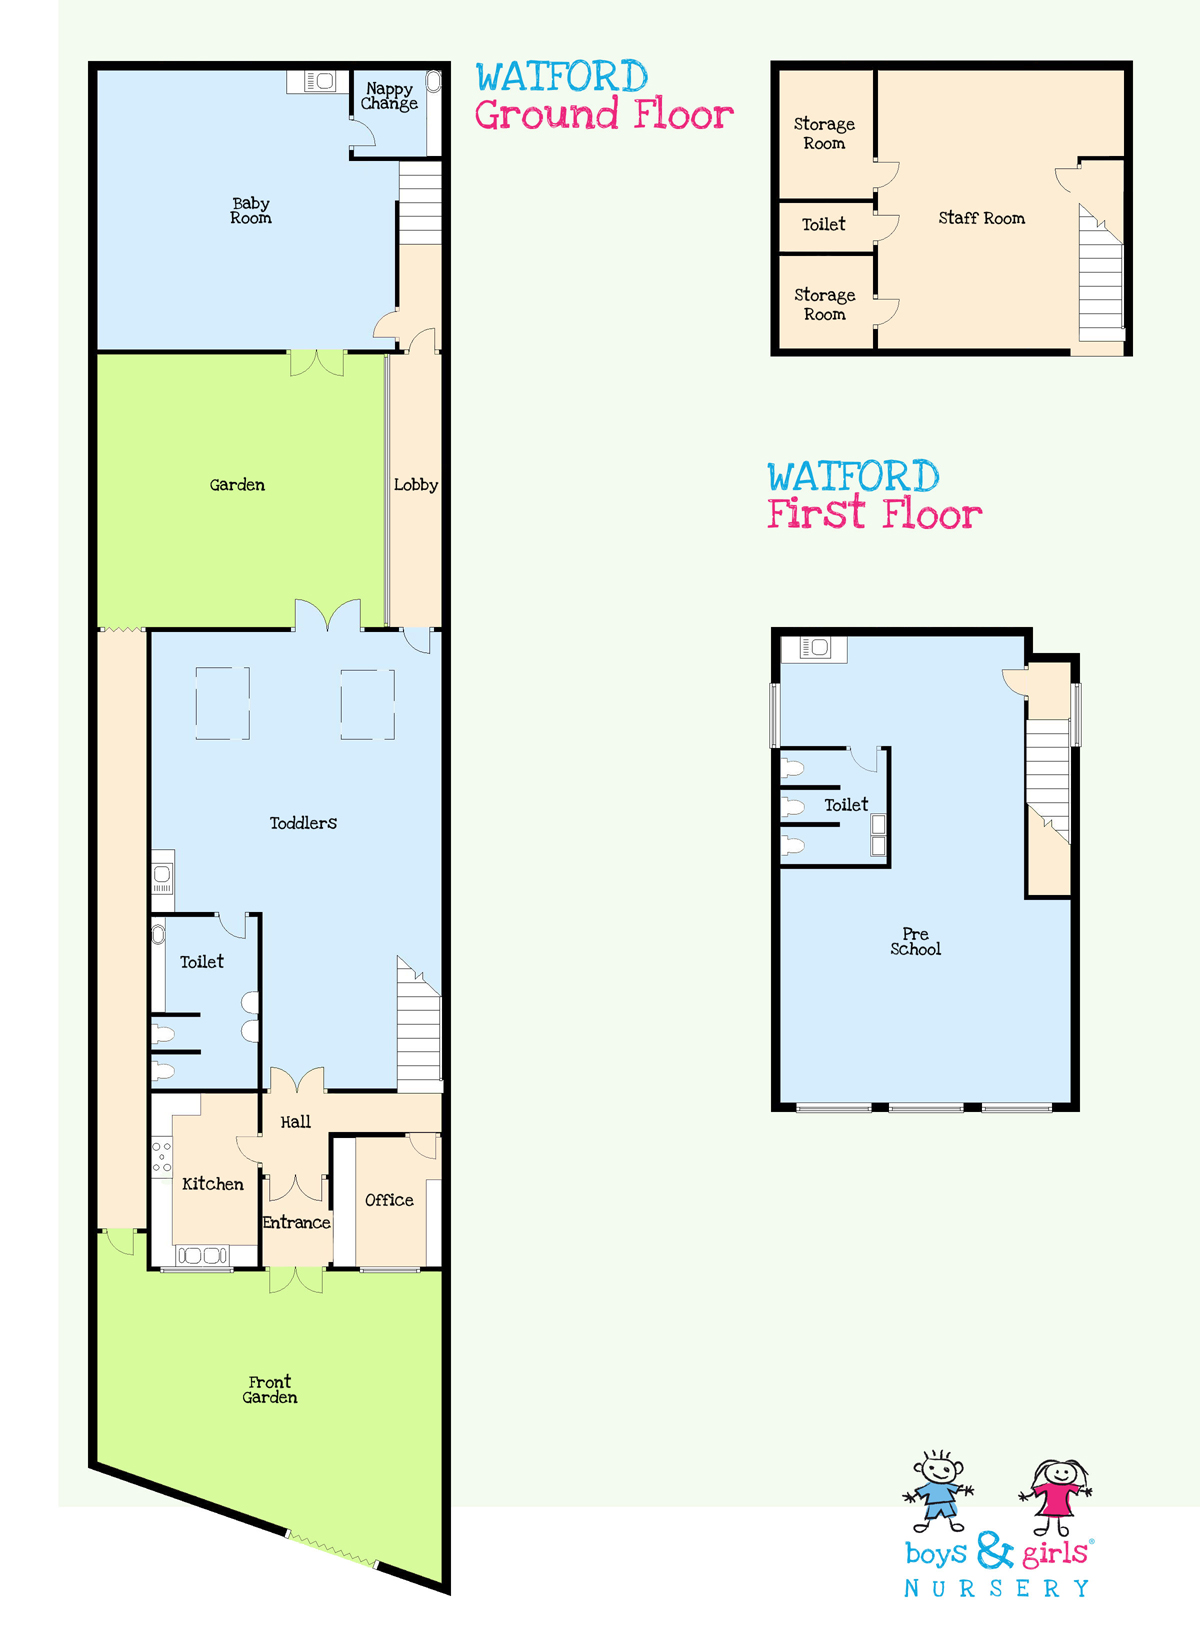 Church Nursery Floor Plans Preschool Nursery Watford Boys